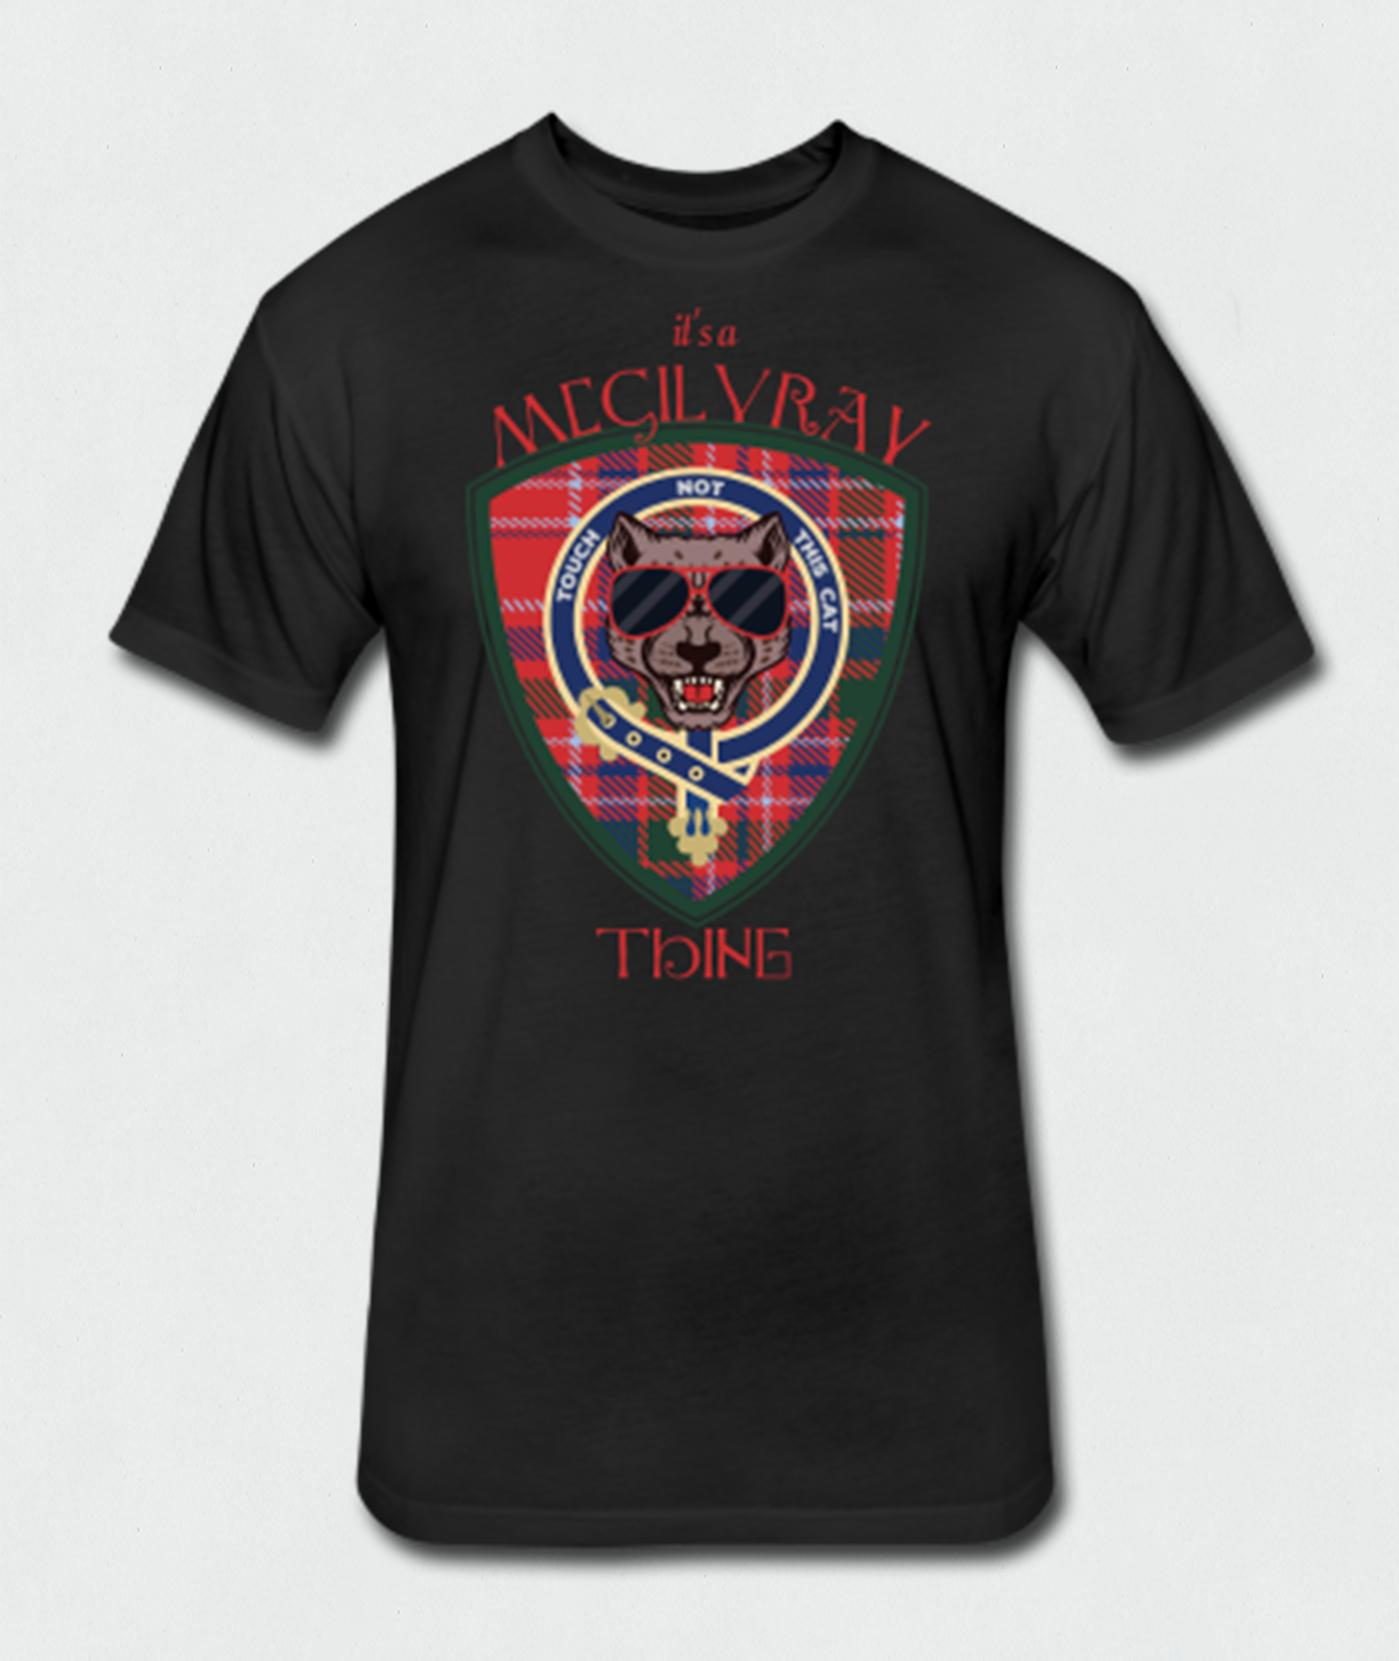 t-shirt-mcgilvray